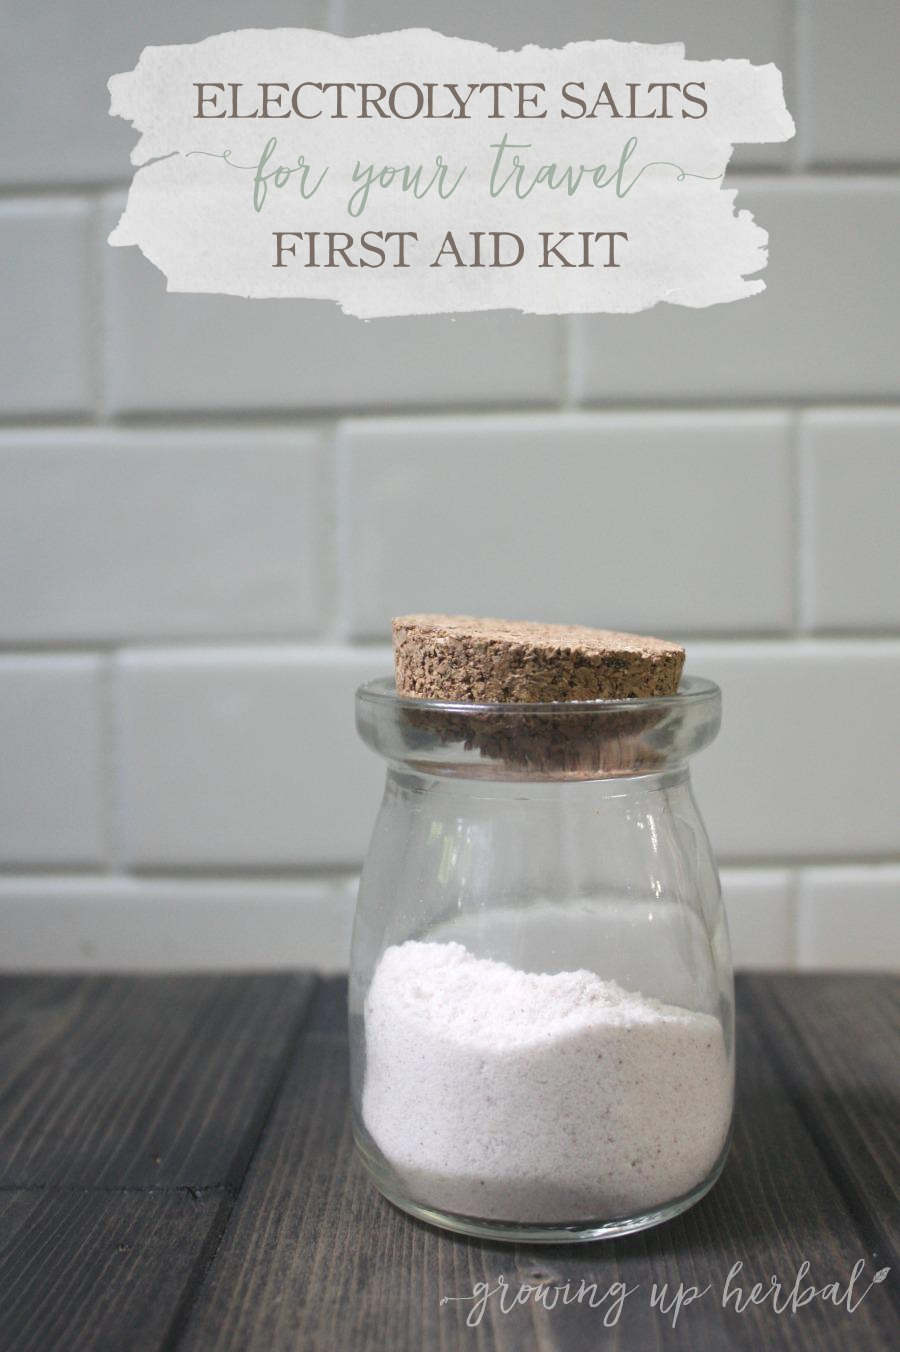 Electrolyte Salts For Your Travel First Aid Kit   Growing Up Herbal   Be prepared for stomach viruses when you're on the road. These electrolyte salts make homemade electrolyte drinks quick and easy!